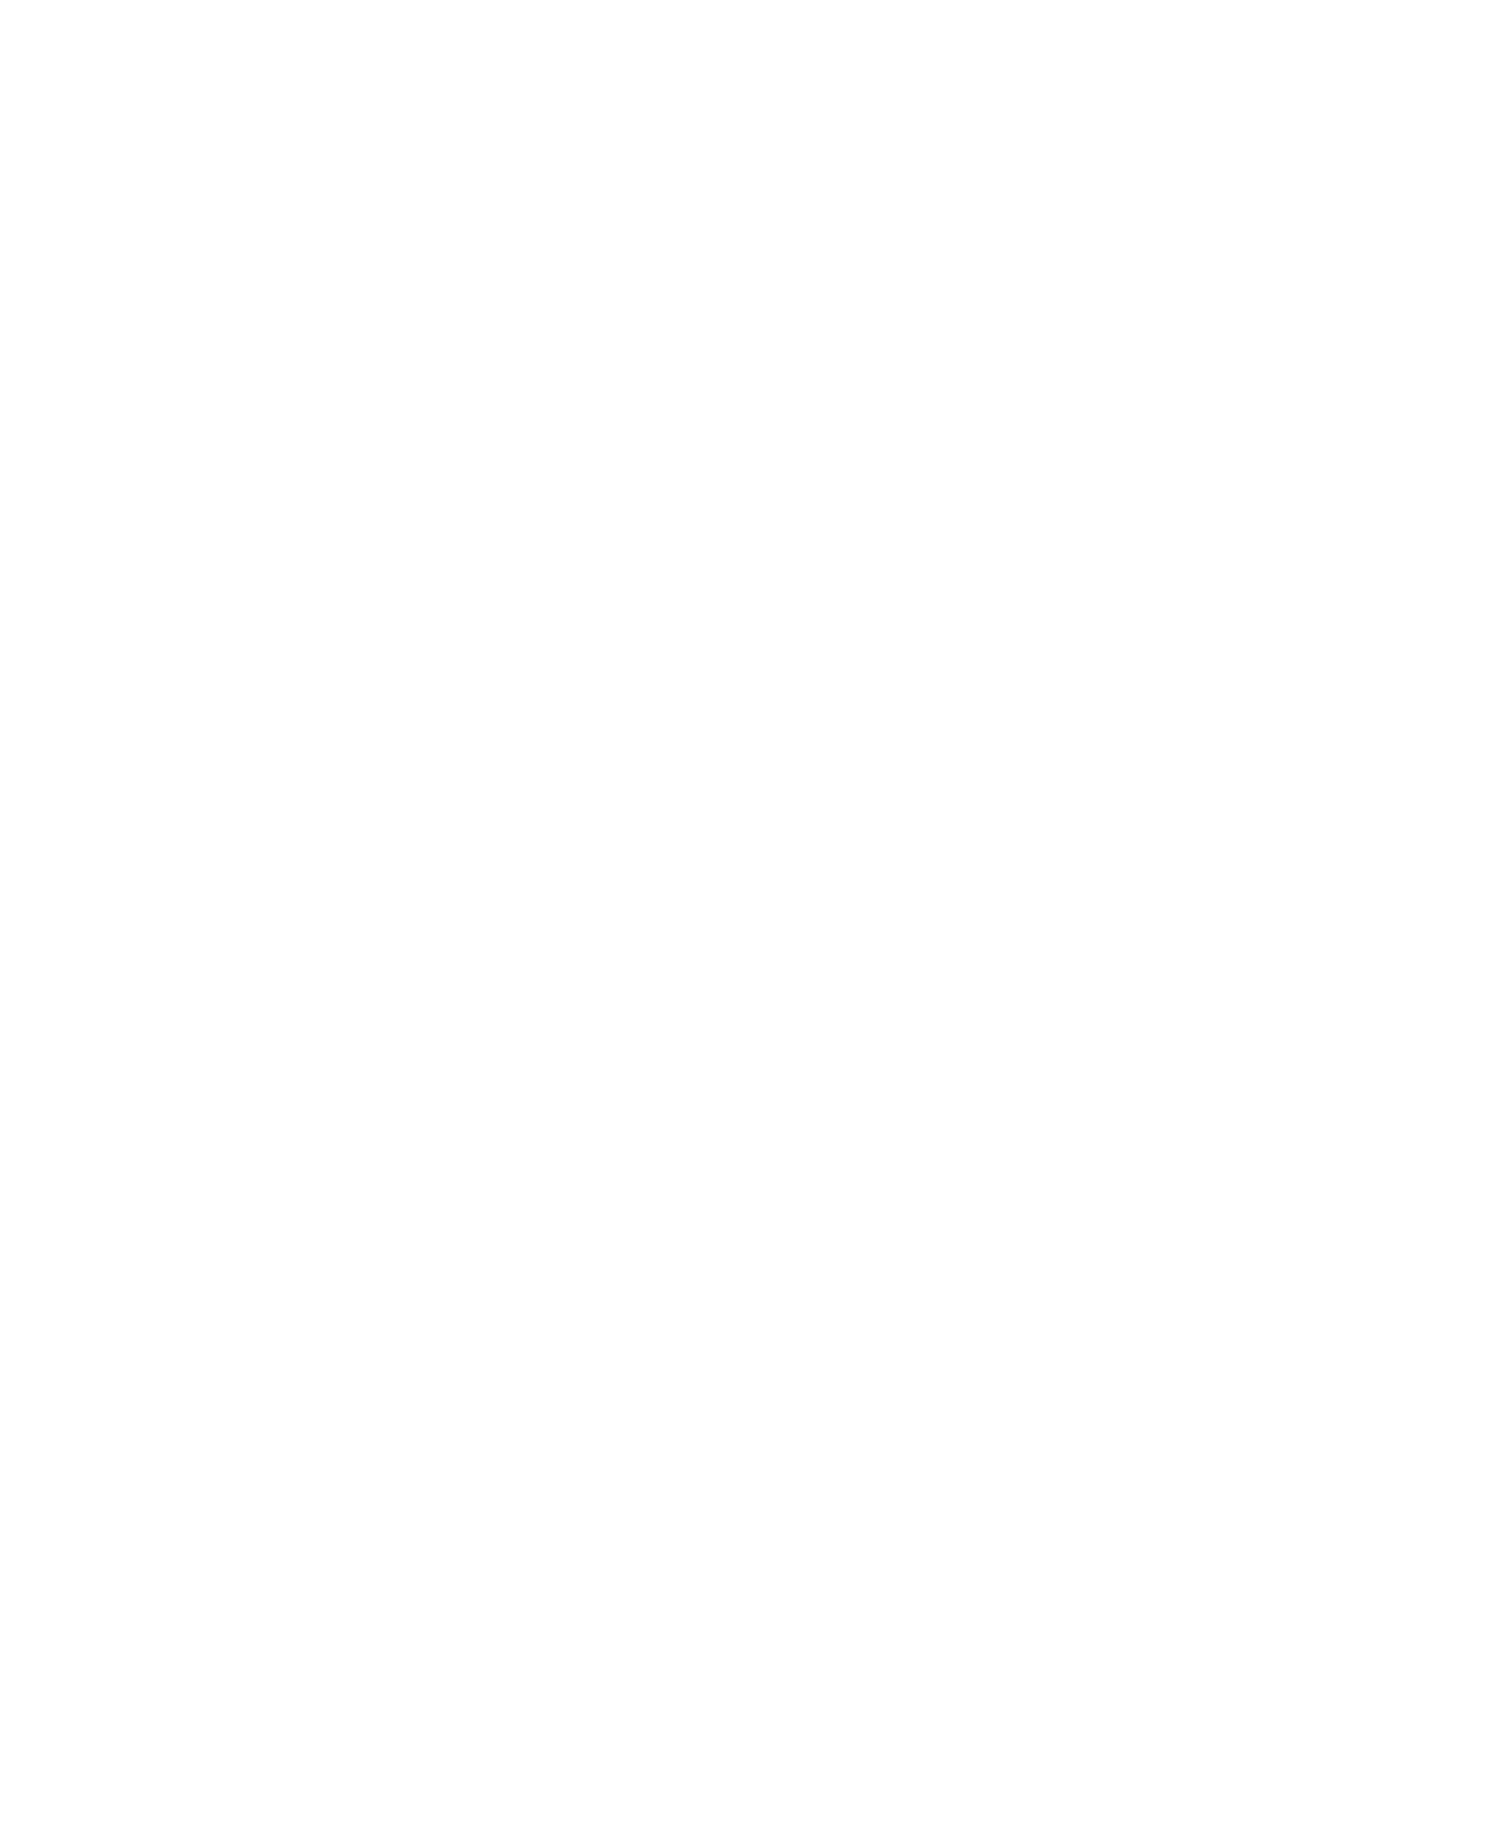 The George & Dragon Seaton